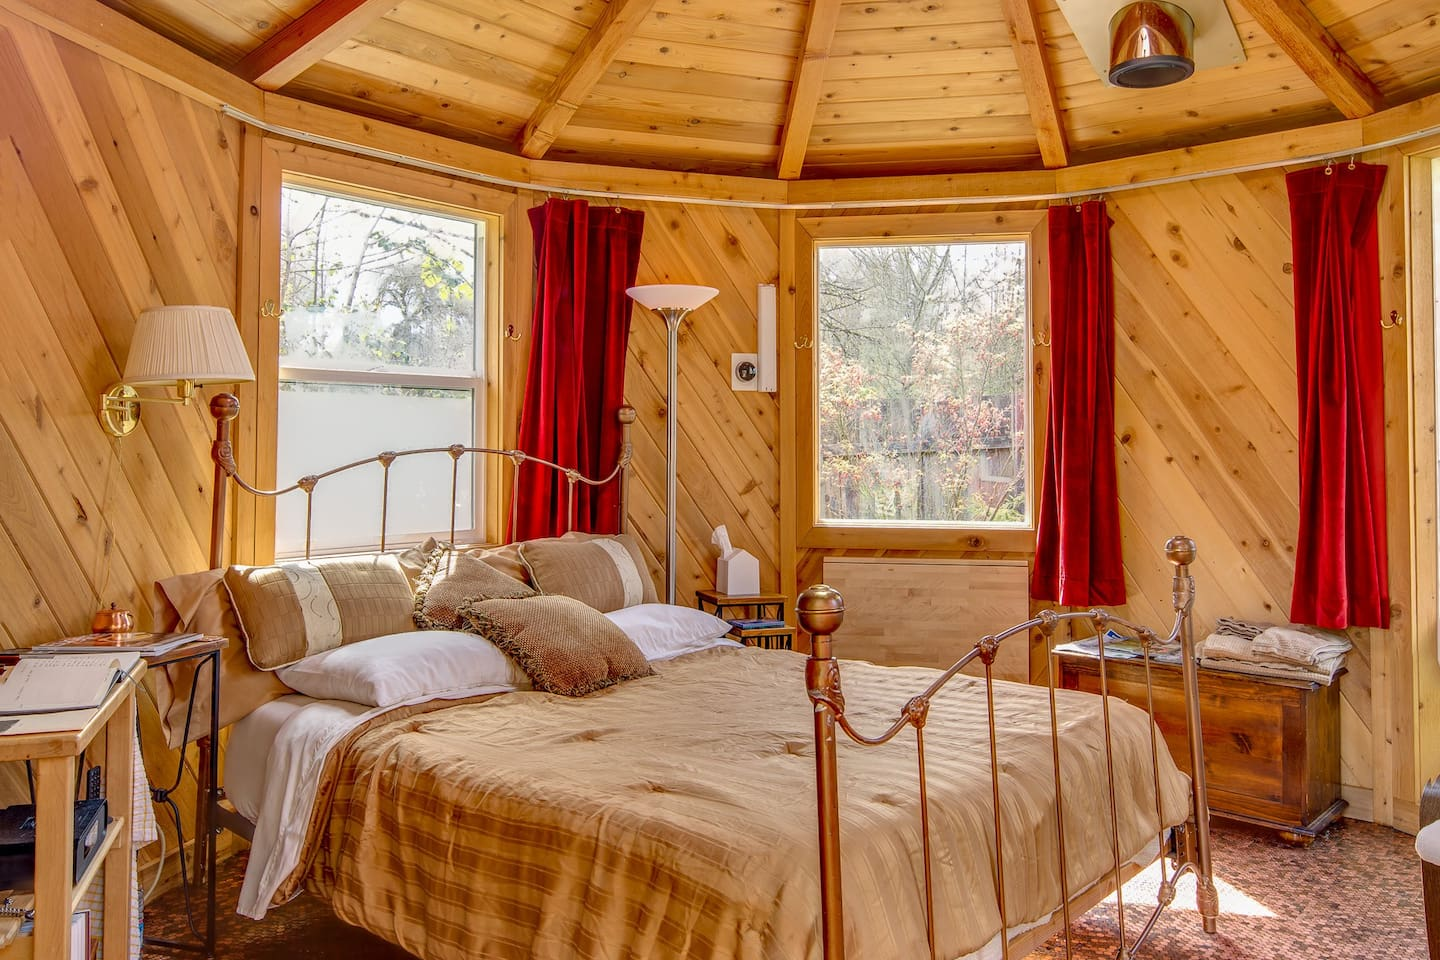 If you've never slept in a roundhouse, you've probably never truly slept.